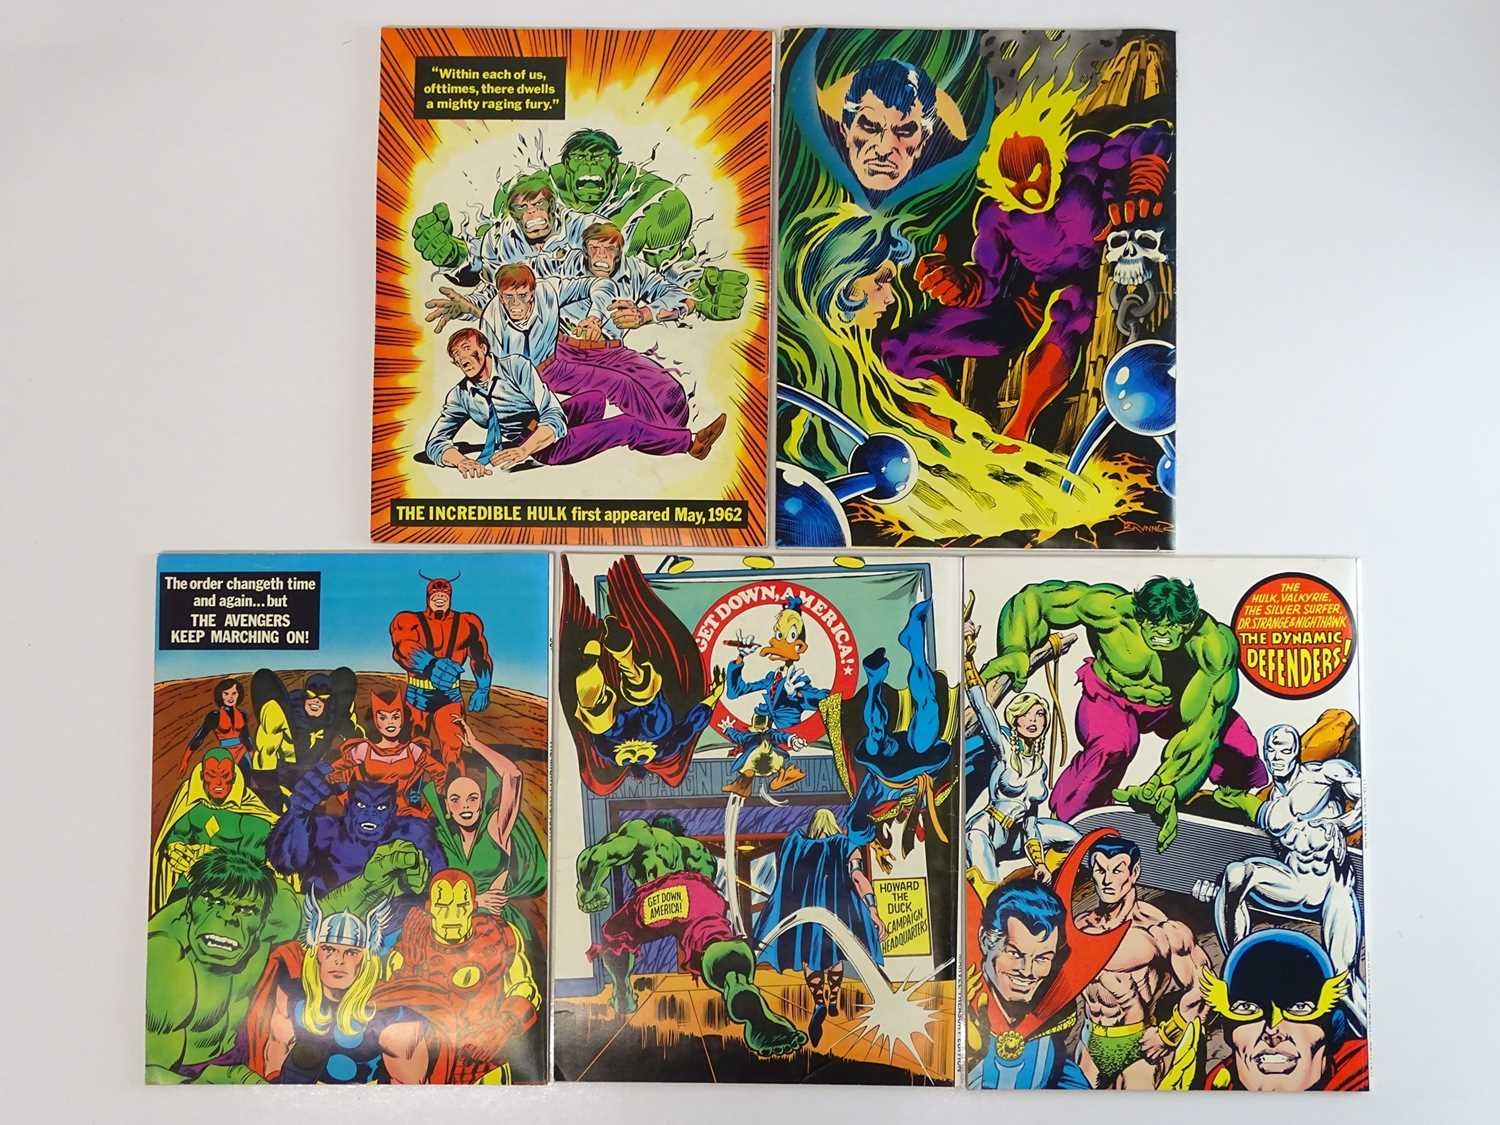 MARVEL TREASURY EDITIONS LOT - (5 in Lot) - (1975/78 - MARVEL - UK Price Variant) - Includes #5 - - Image 2 of 2